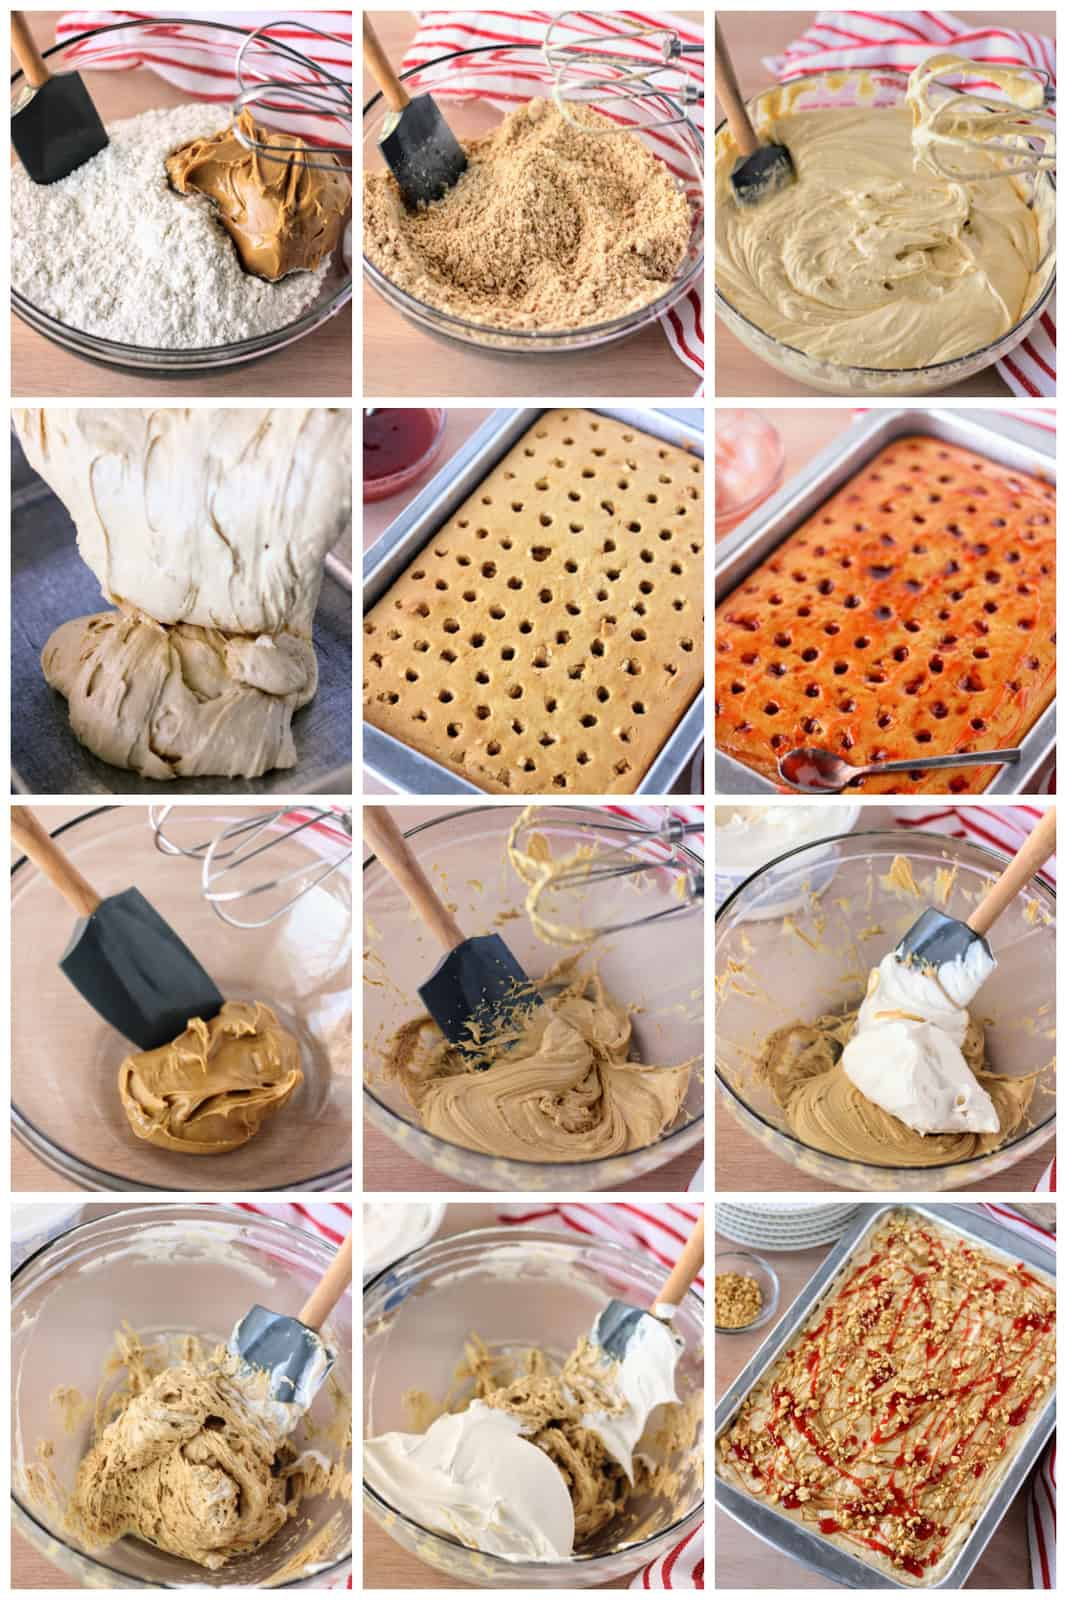 Step by step photos on how to make a Peanut Butter and Jelly Poke Cake